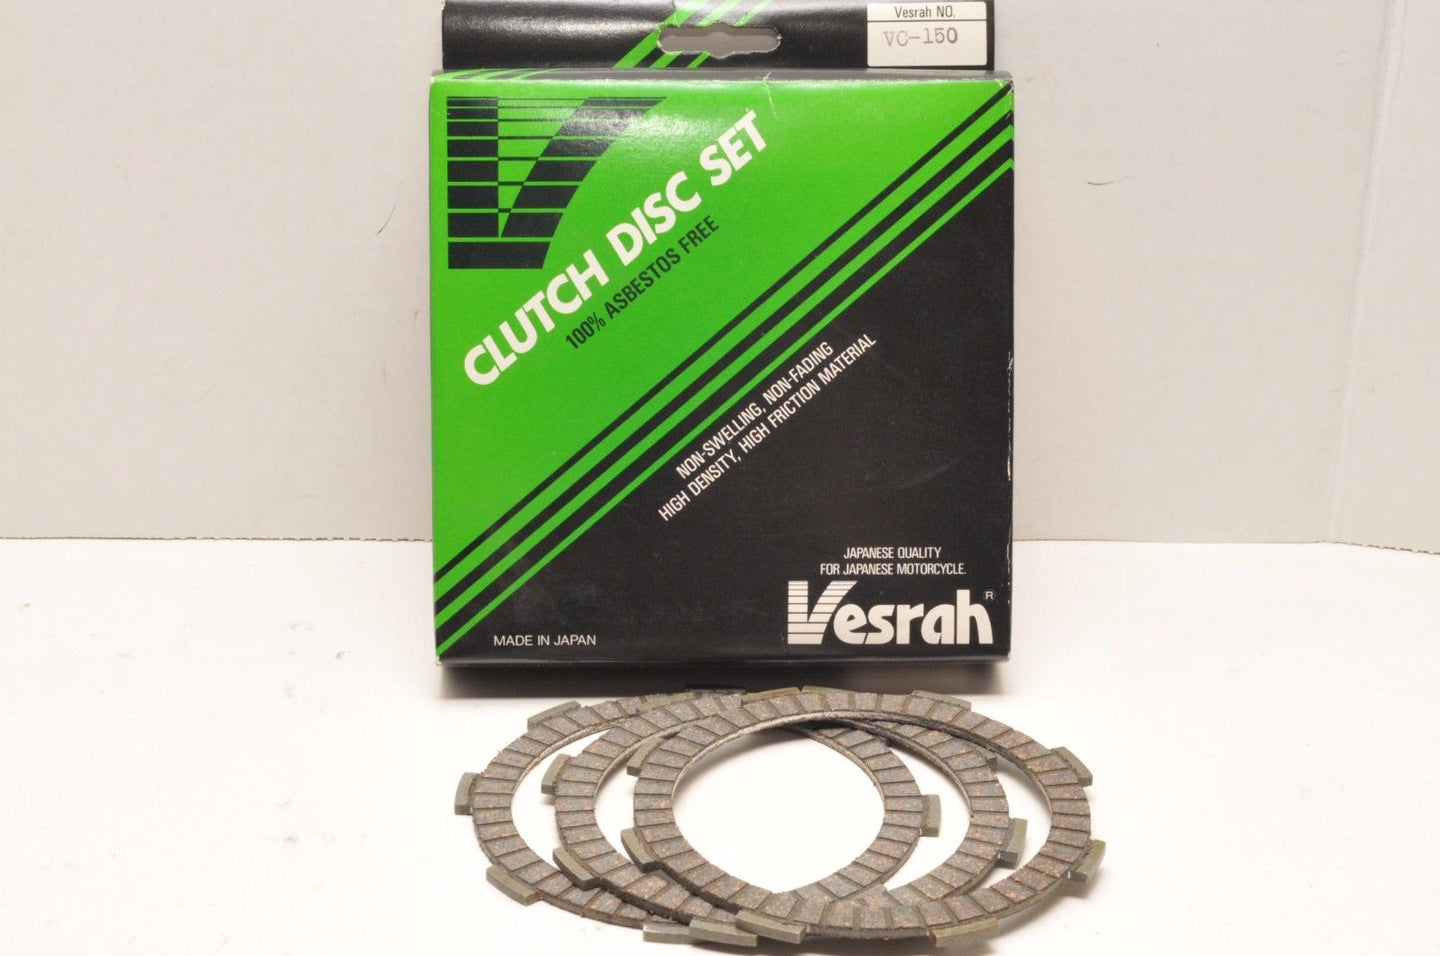 Vesrah Friction Plates for HONDA XR80 79-84 OEM Replacement Clutch Disc Set